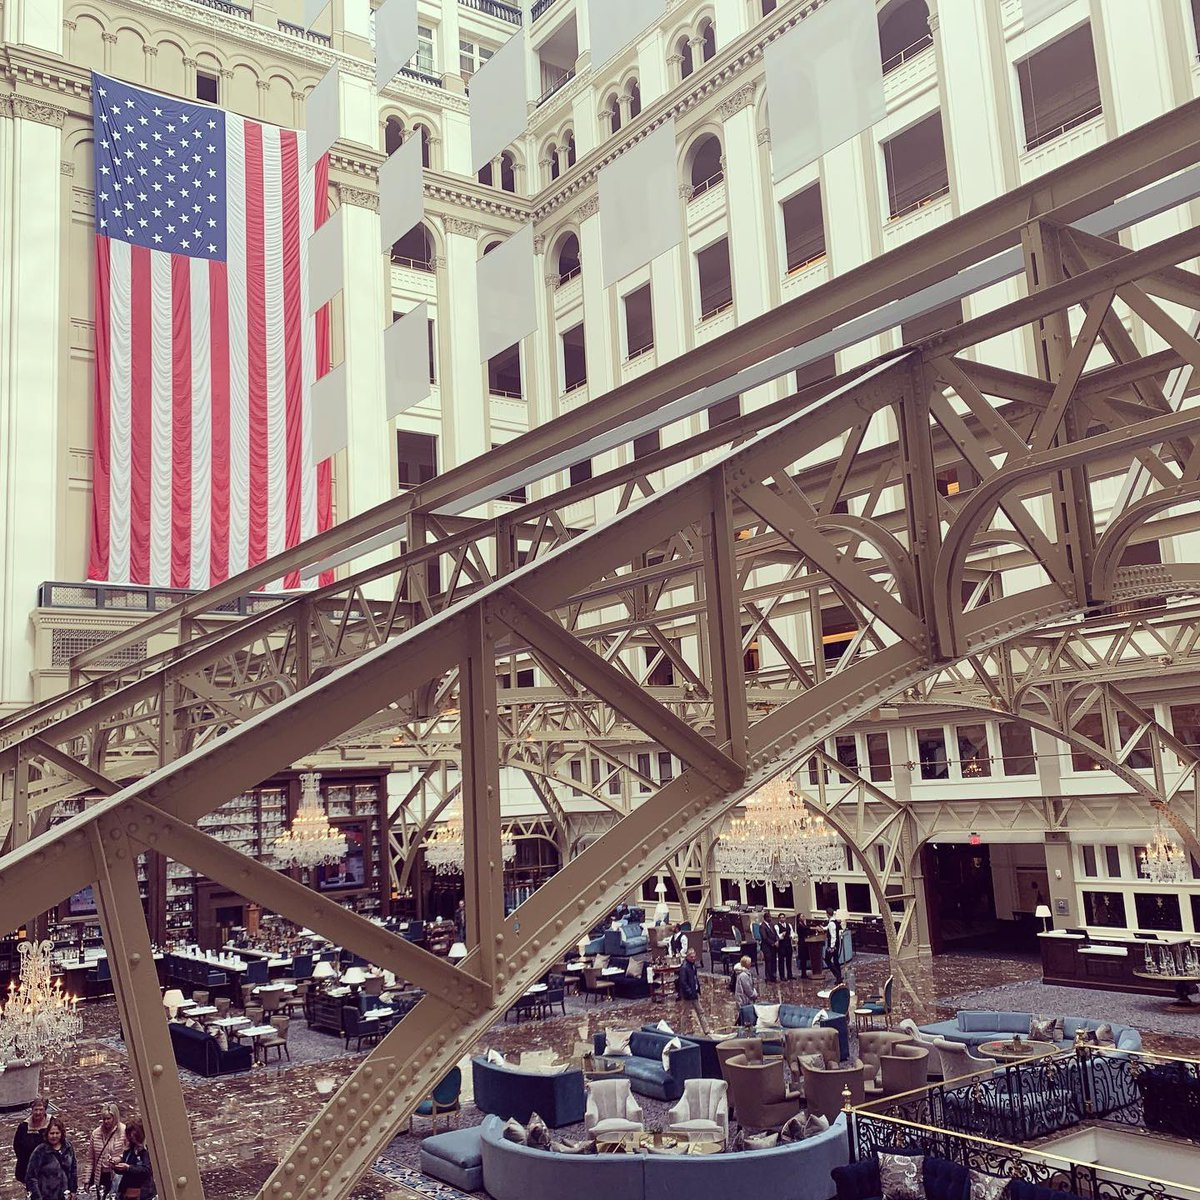 Ramping up activity in America's Living Room...A busy Saturday ahead...#trump #luxury #luxuryhotels #success #neversettle #architecture #design #flag #USA